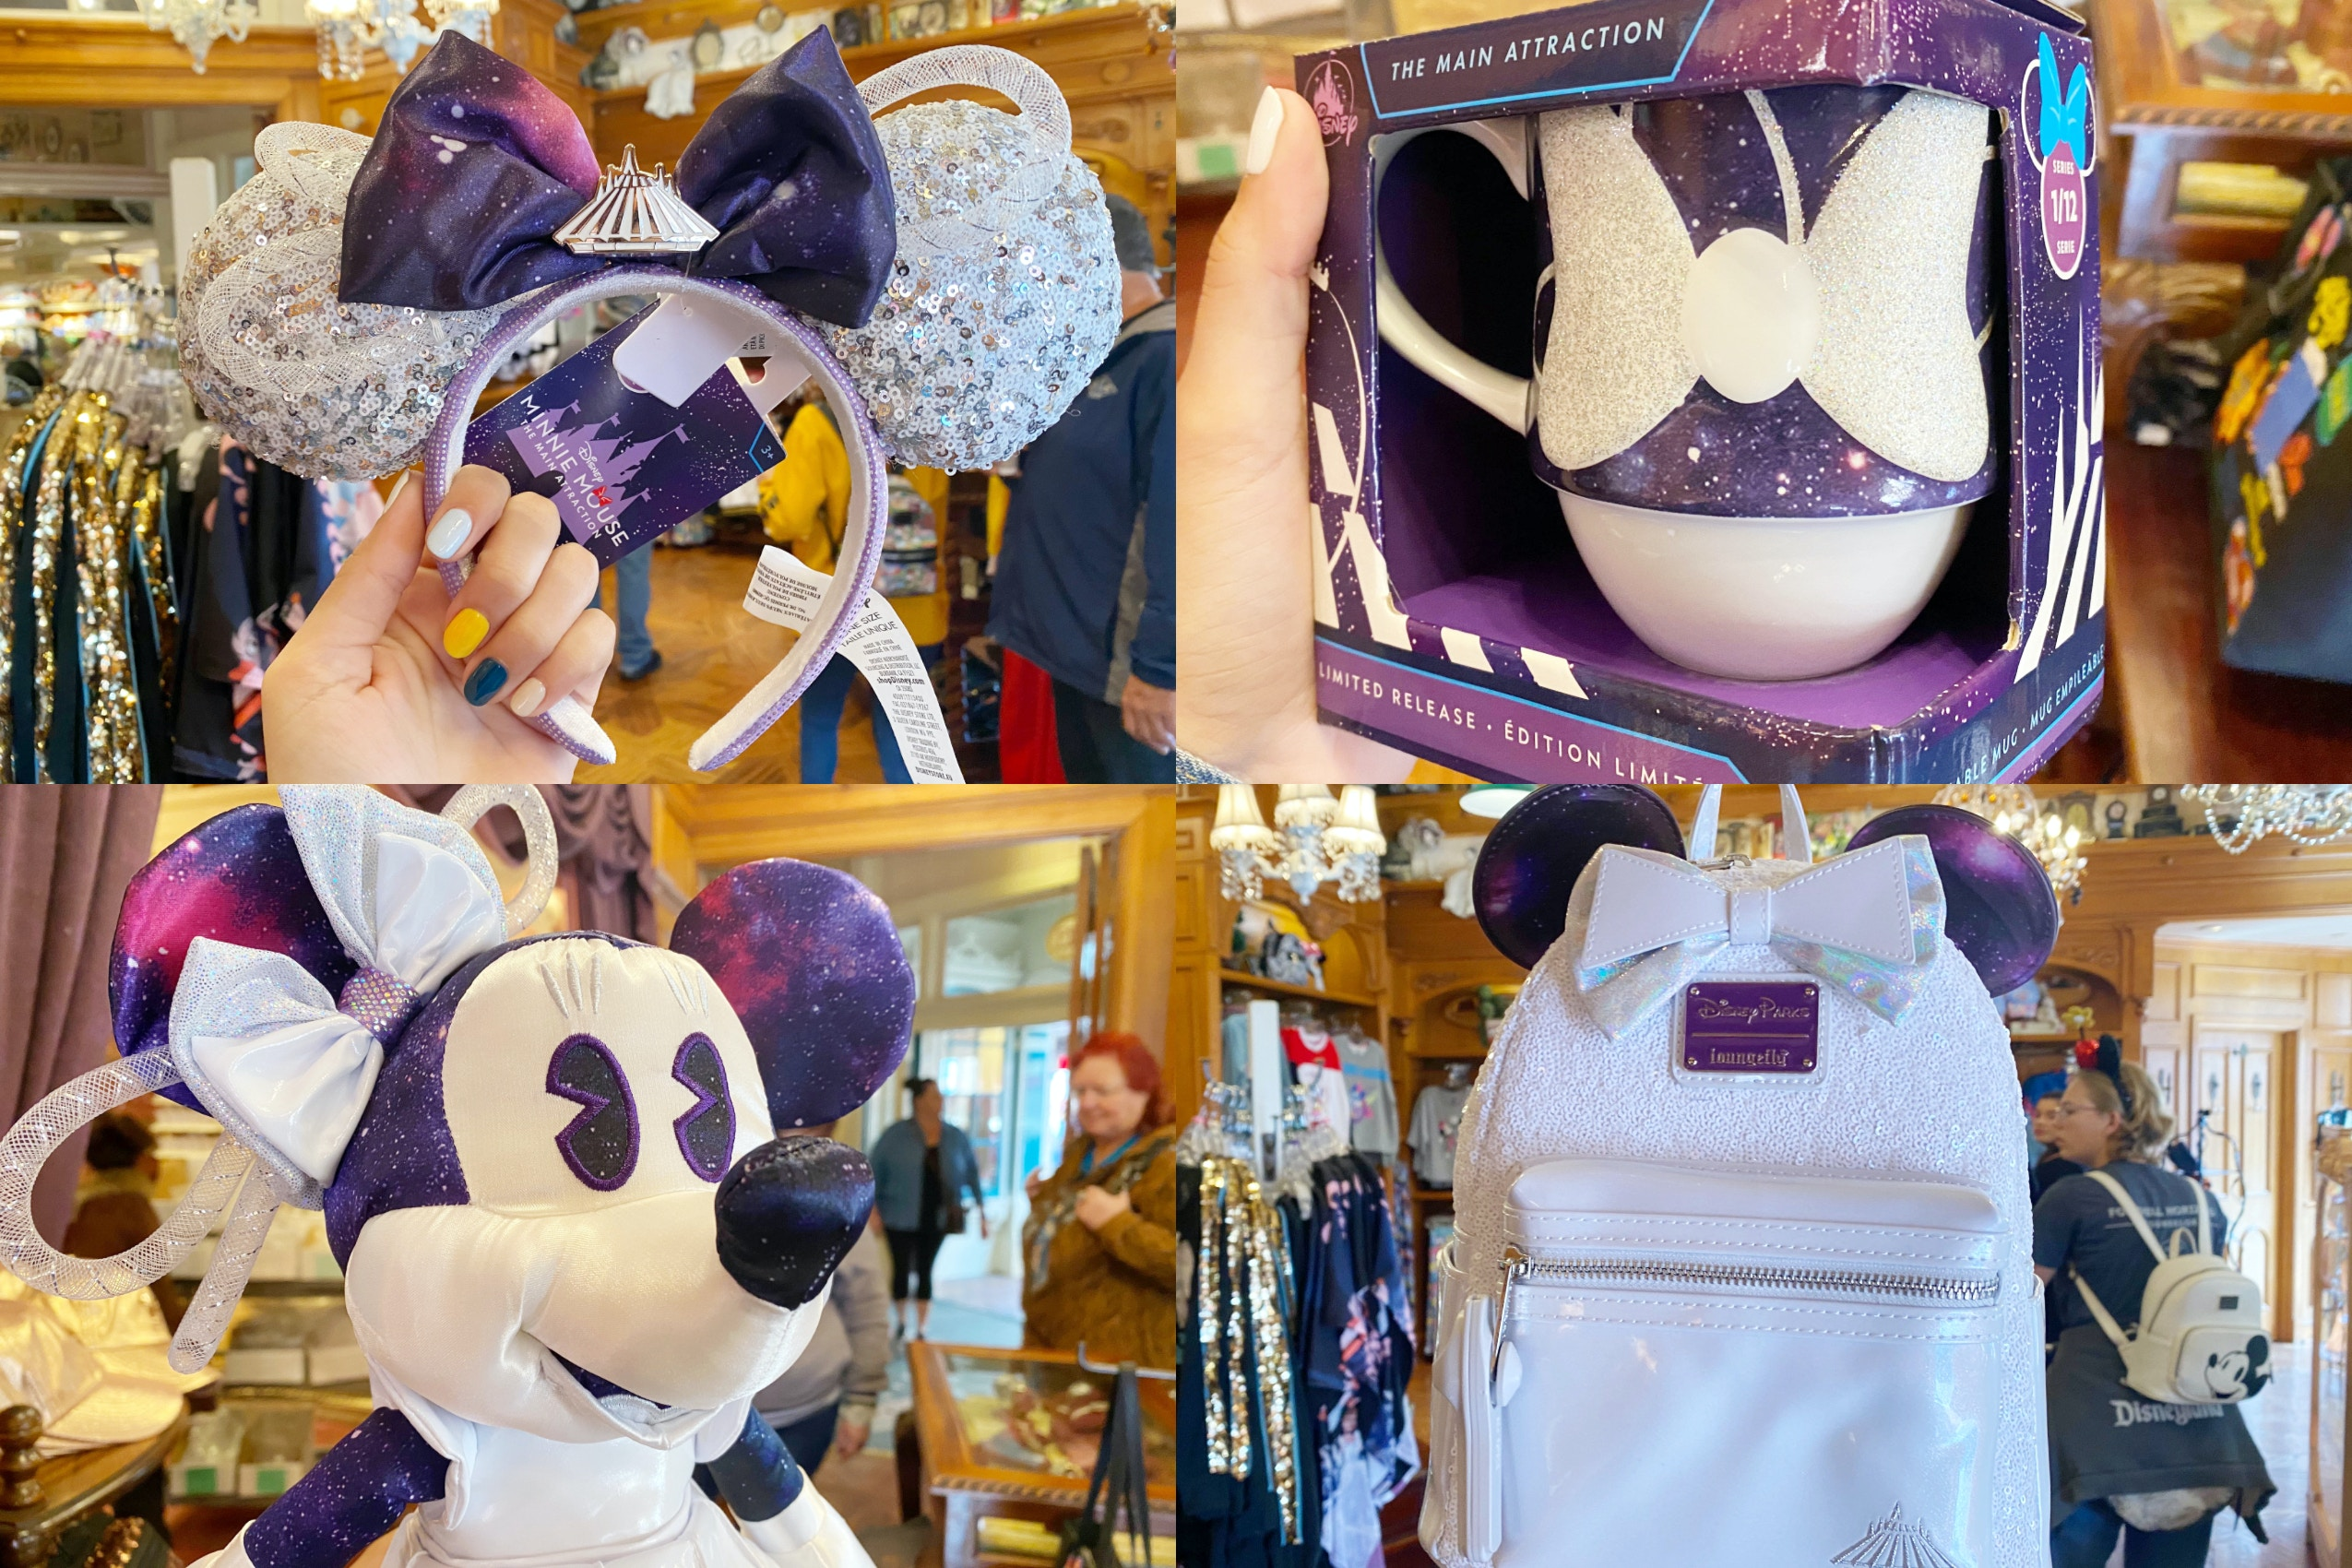 minnie-mouse-main-attraction-january-collage-disneyland.jpg